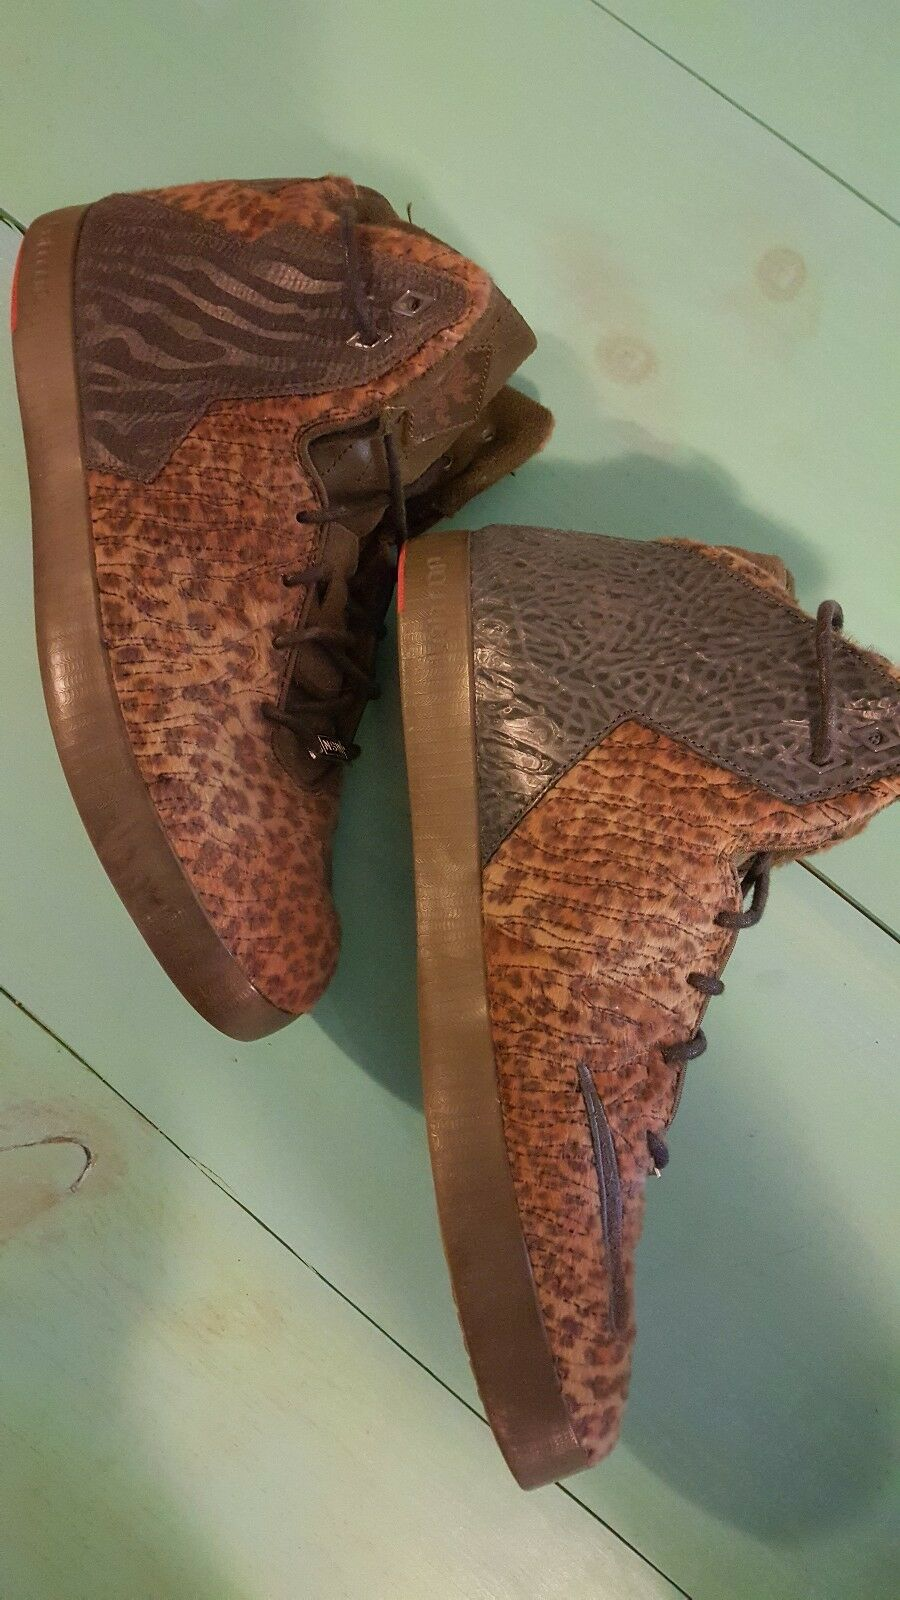 NIKE 2014 LEBRON XI NSW LIFESTYLE LEOPARD 616766-301 13 mens shoes KING LBJ NBA